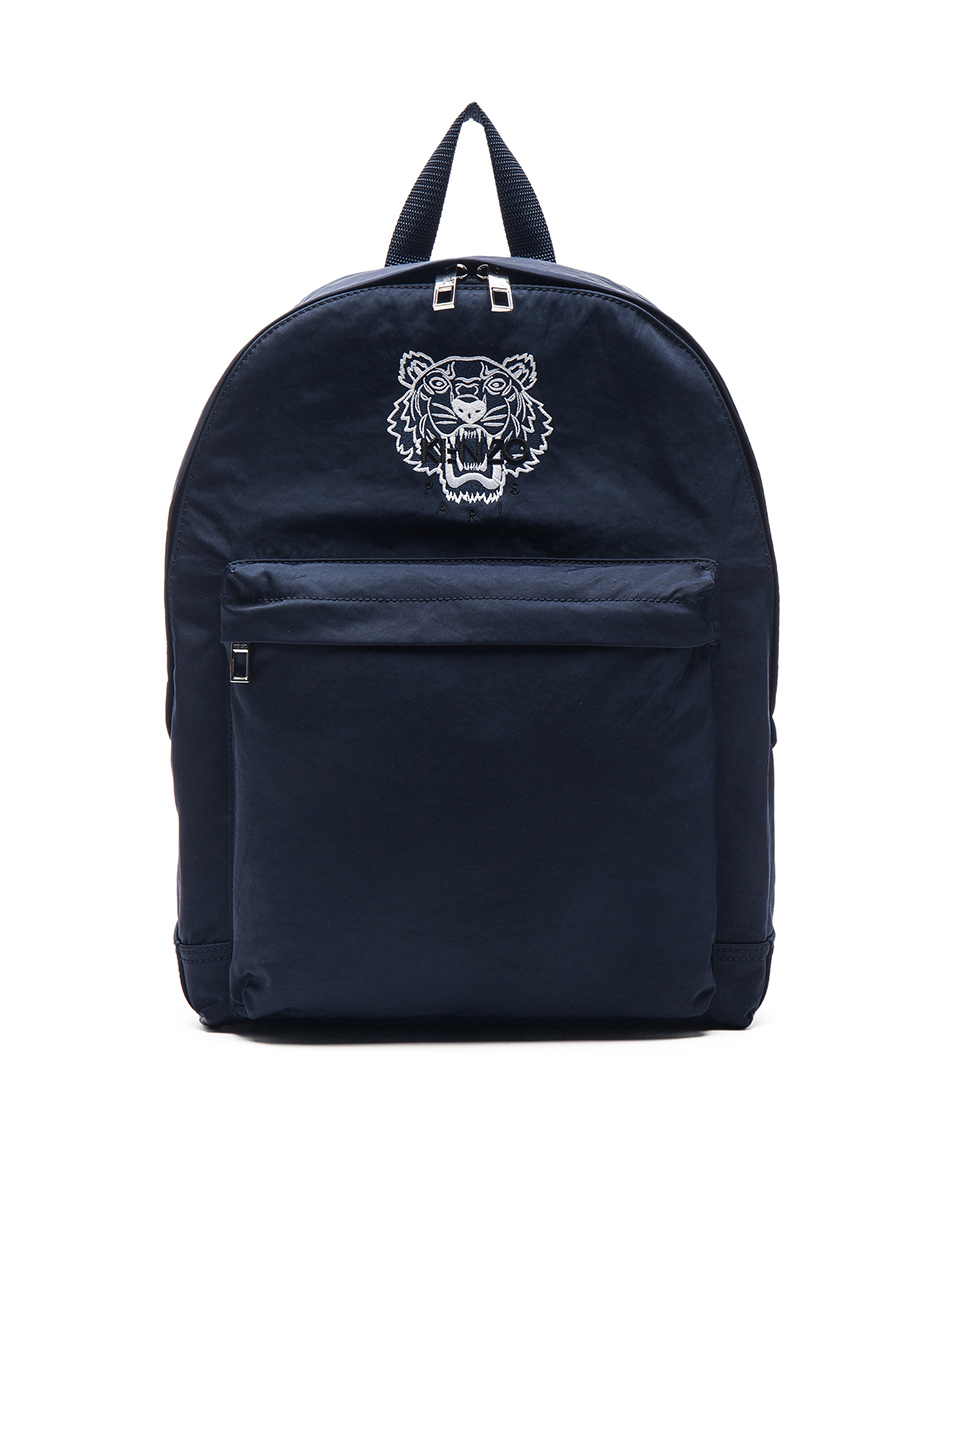 KENZO Backpack in Blue